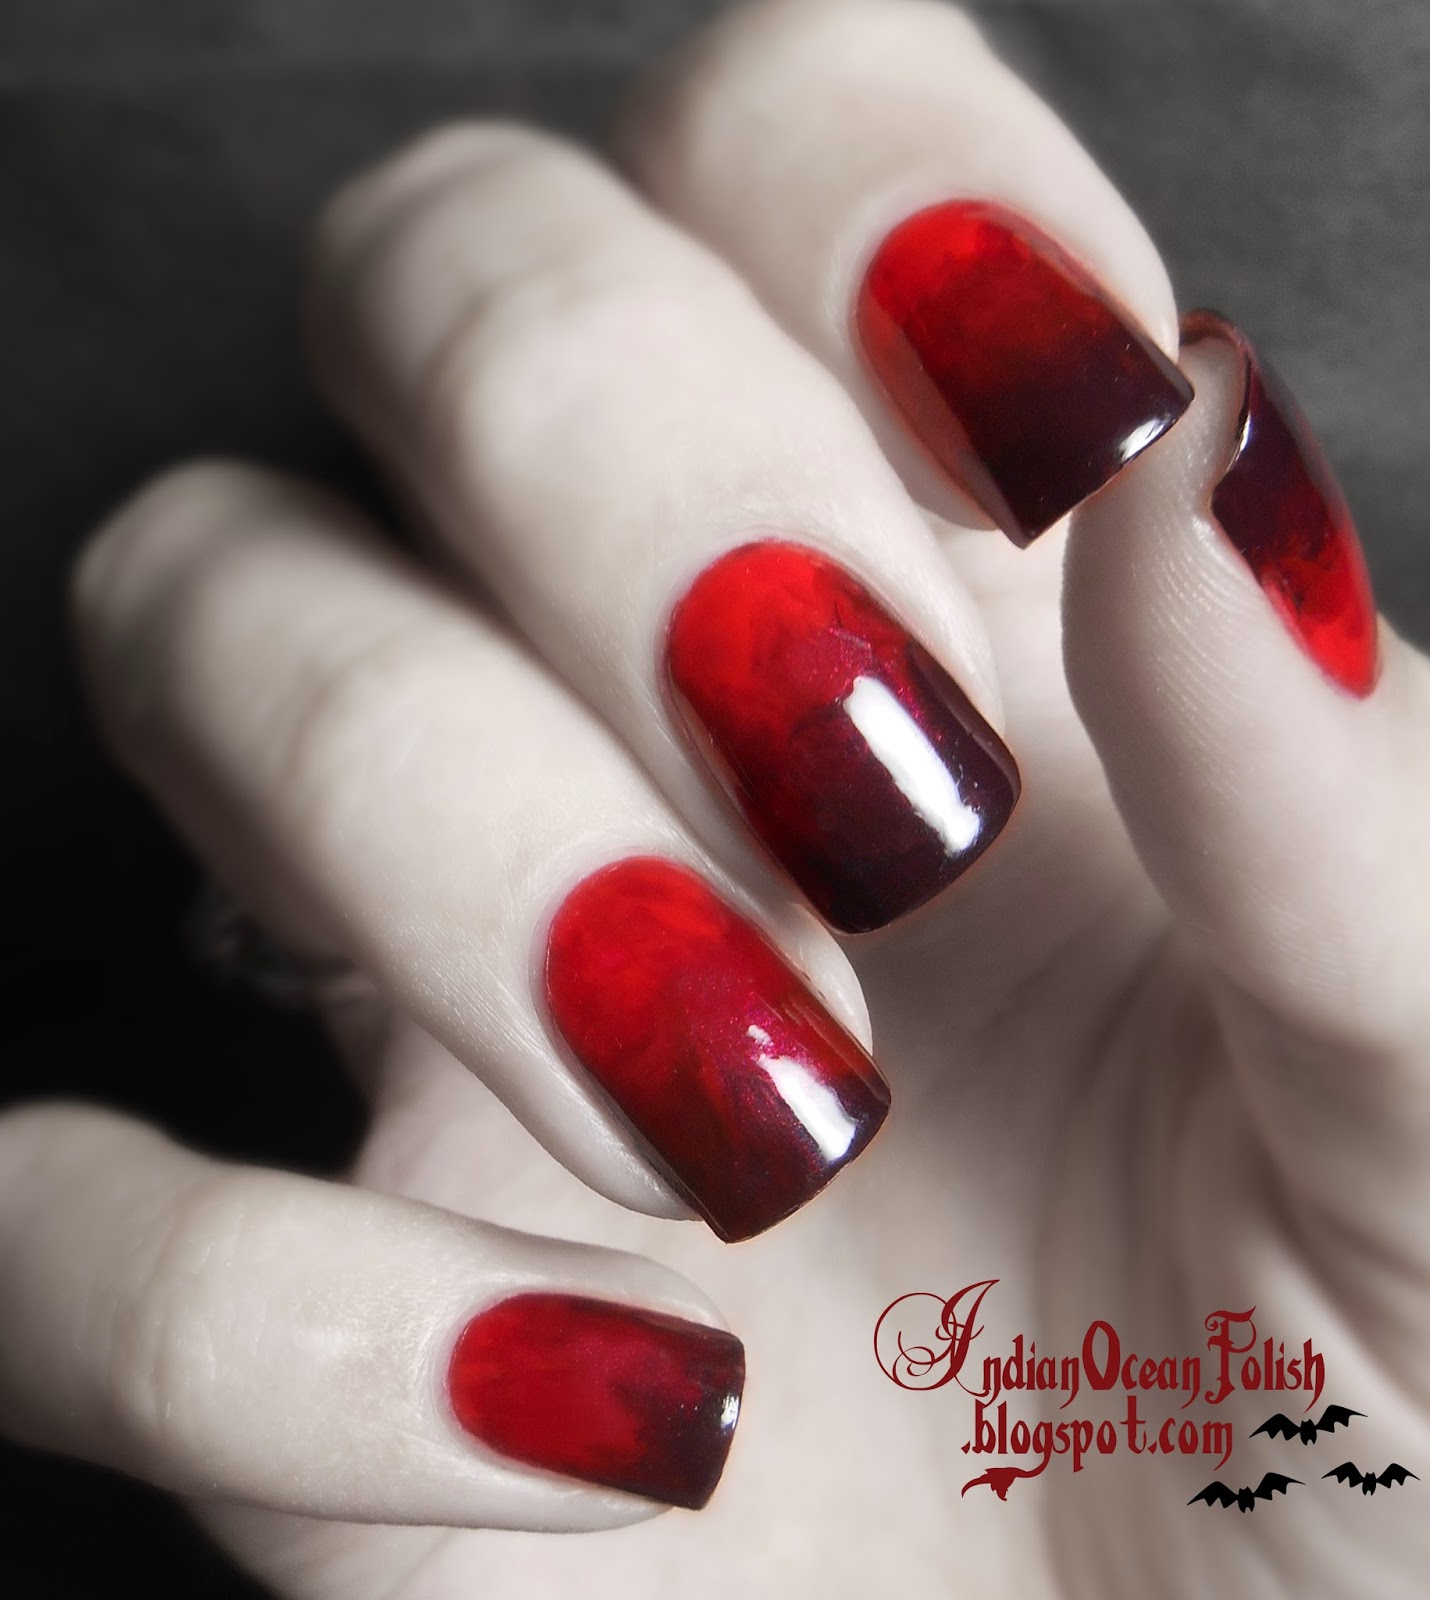 Indian Ocean Polish: A Few Halloween Nail Art Ideas for 2013